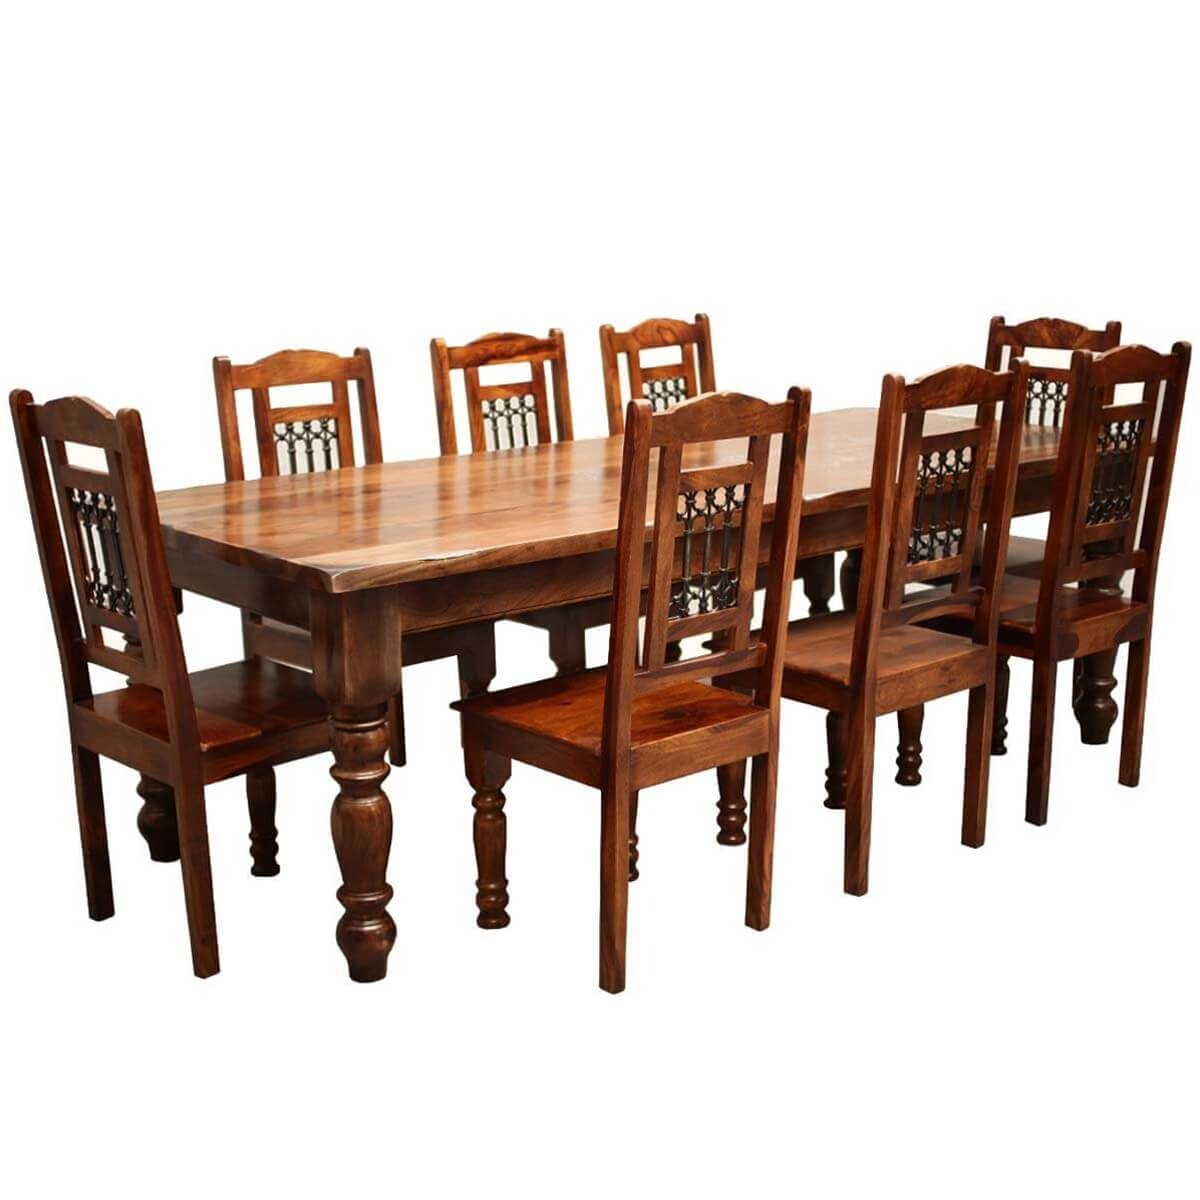 p rustic solid wood large dining room table for 8 people